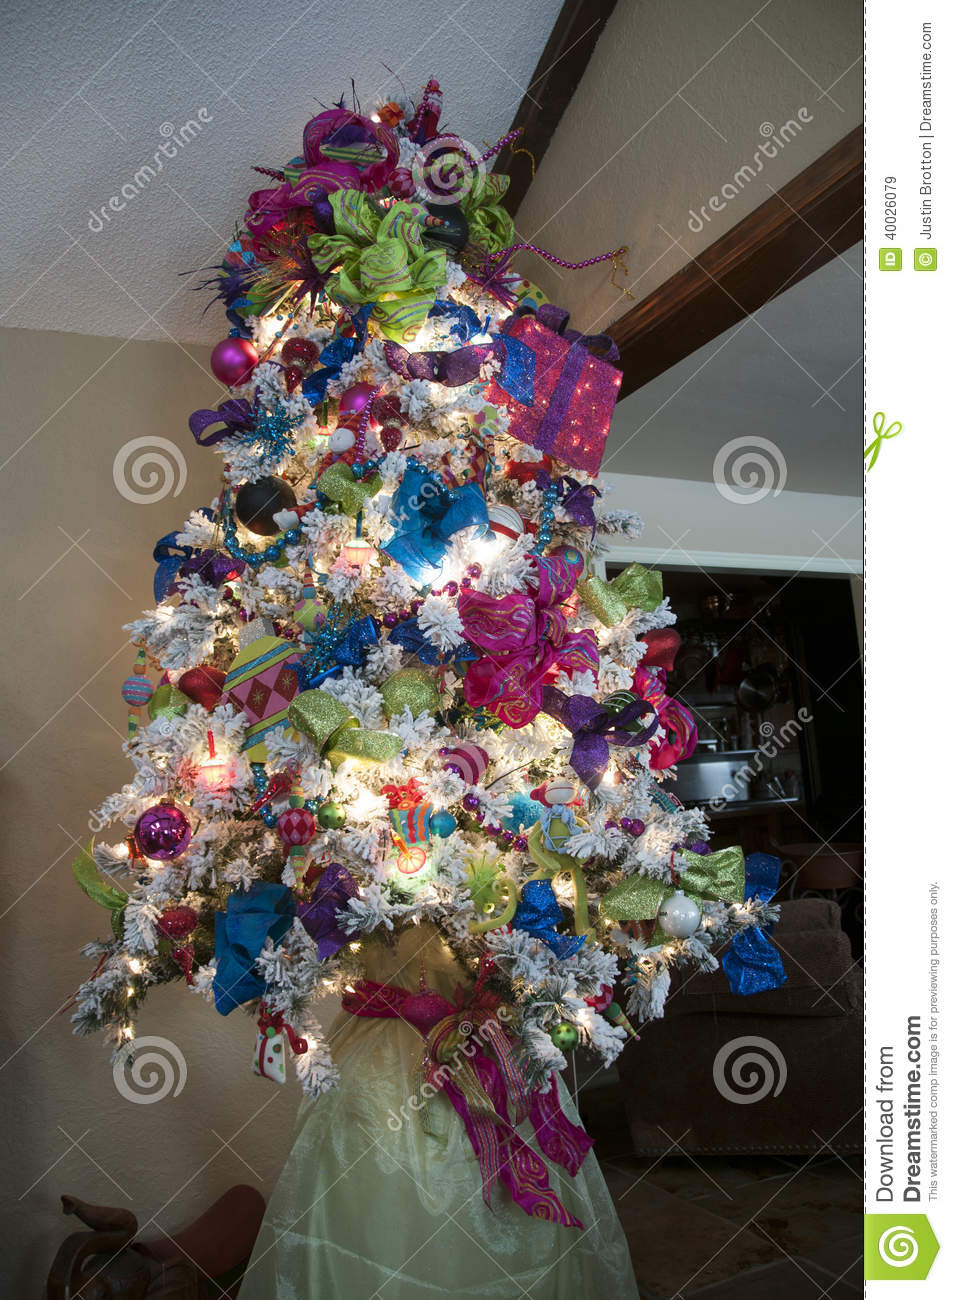 Blue and purple christmas tree decorations - Blue Christmas Decorated Green Purple Tree